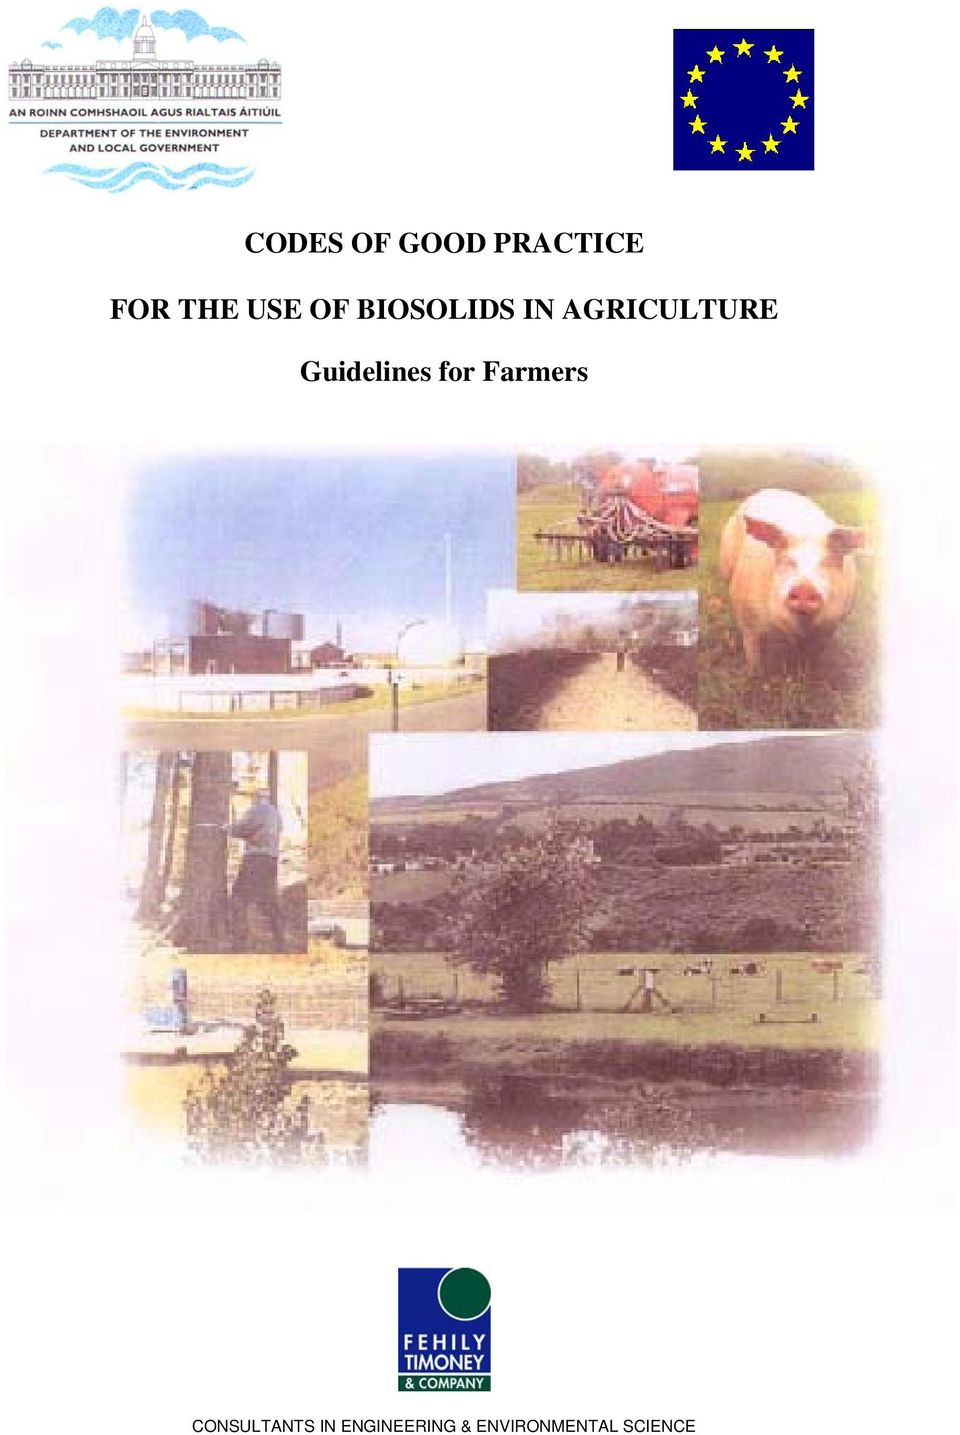 Guidelines for Farmers